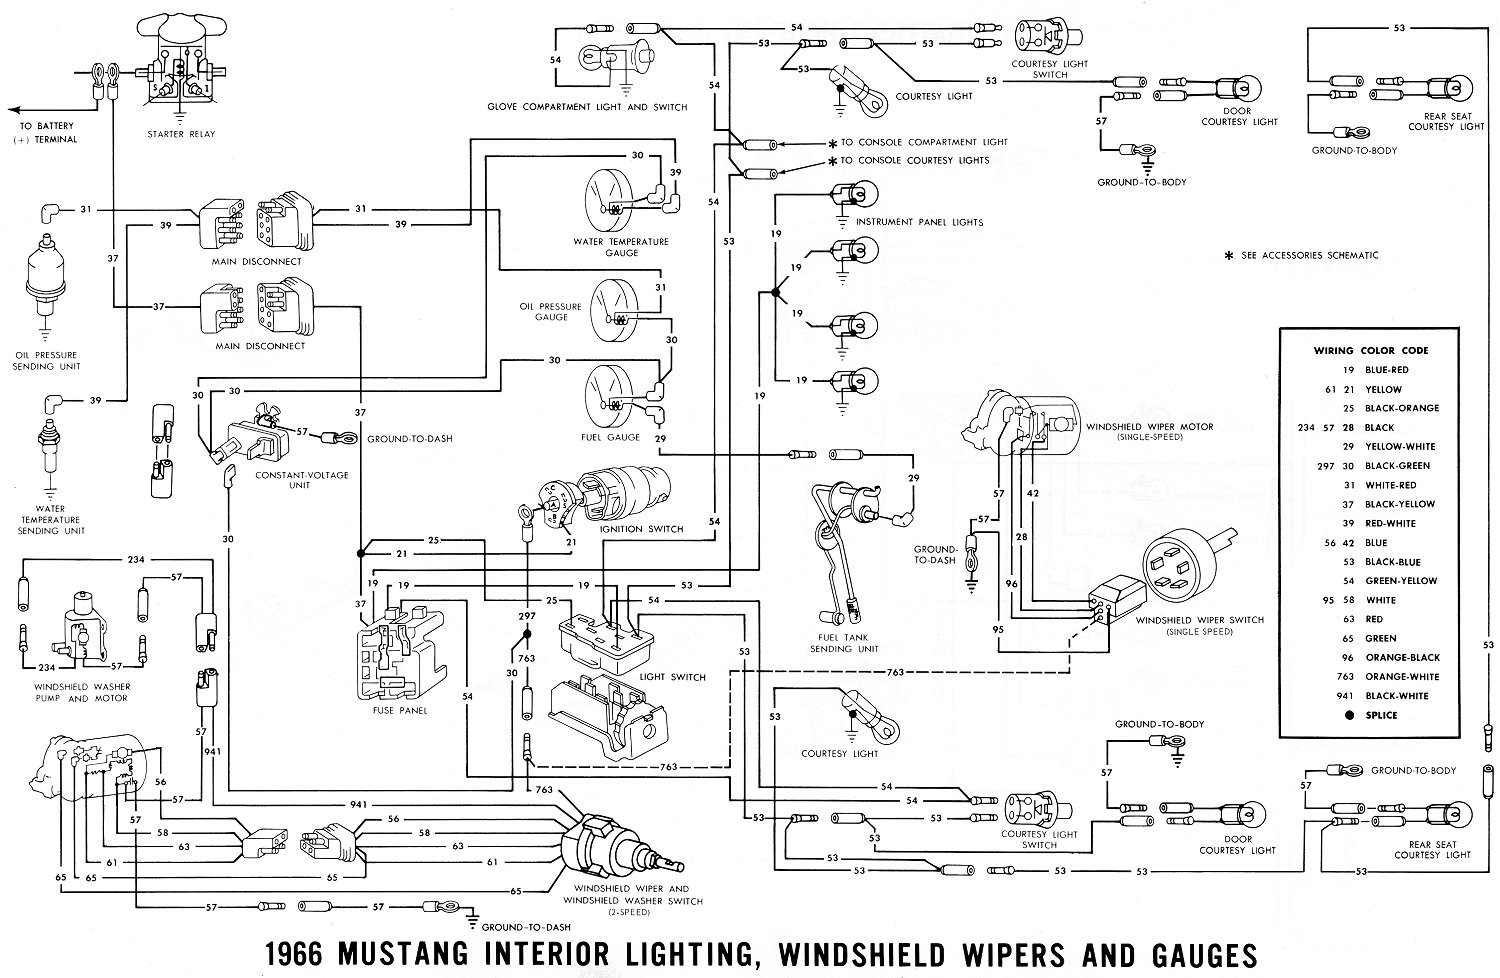 1968 Mustang Turn Signal Switch Diagram Wiring Schematic Starting 7 Way Trailer Plug Contrail Triler 1965 Color Simple Rh David Huggett Co Uk